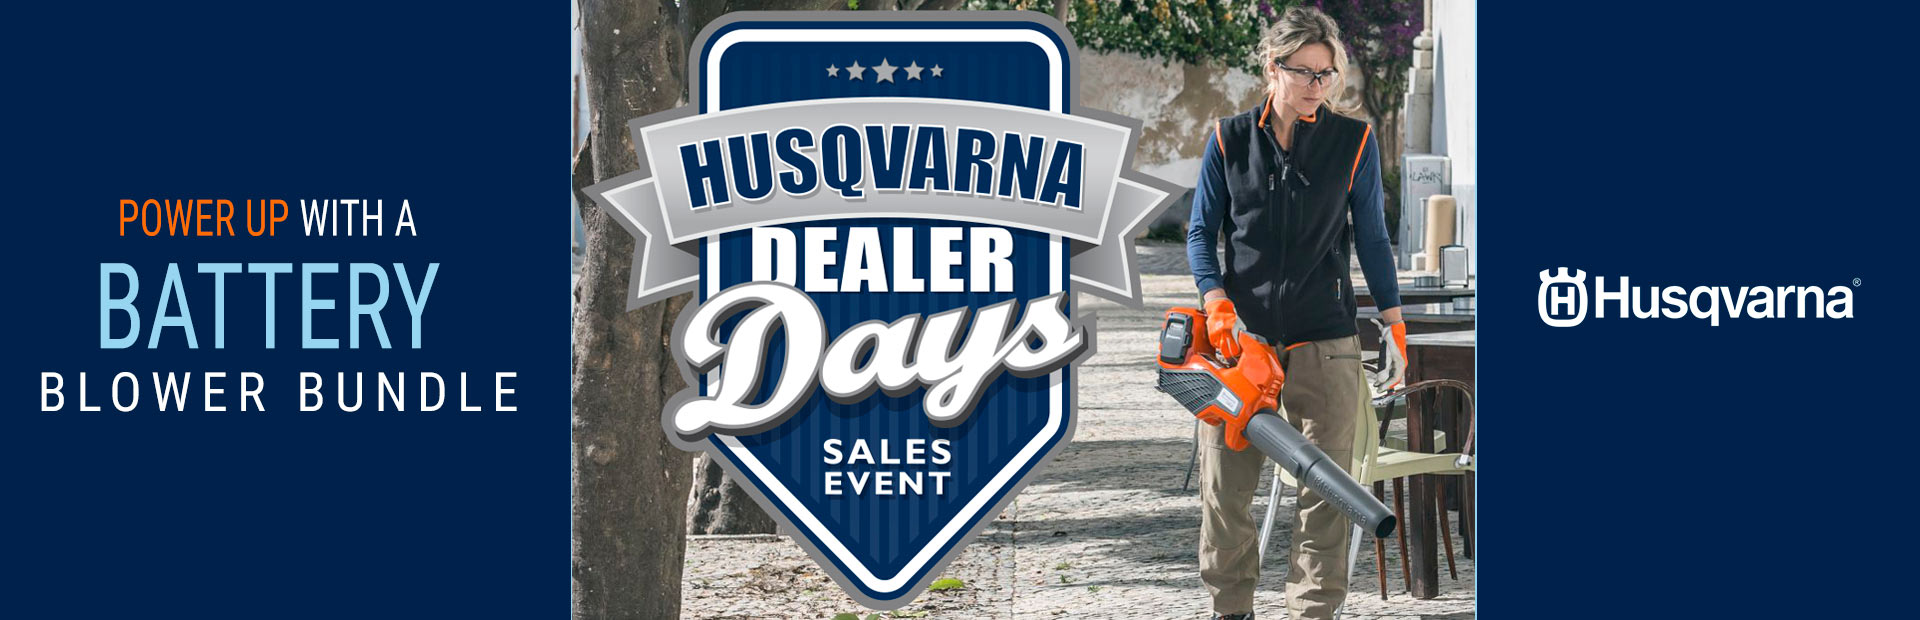 Husqvarna: Power Up With a Battery Blower Bundle